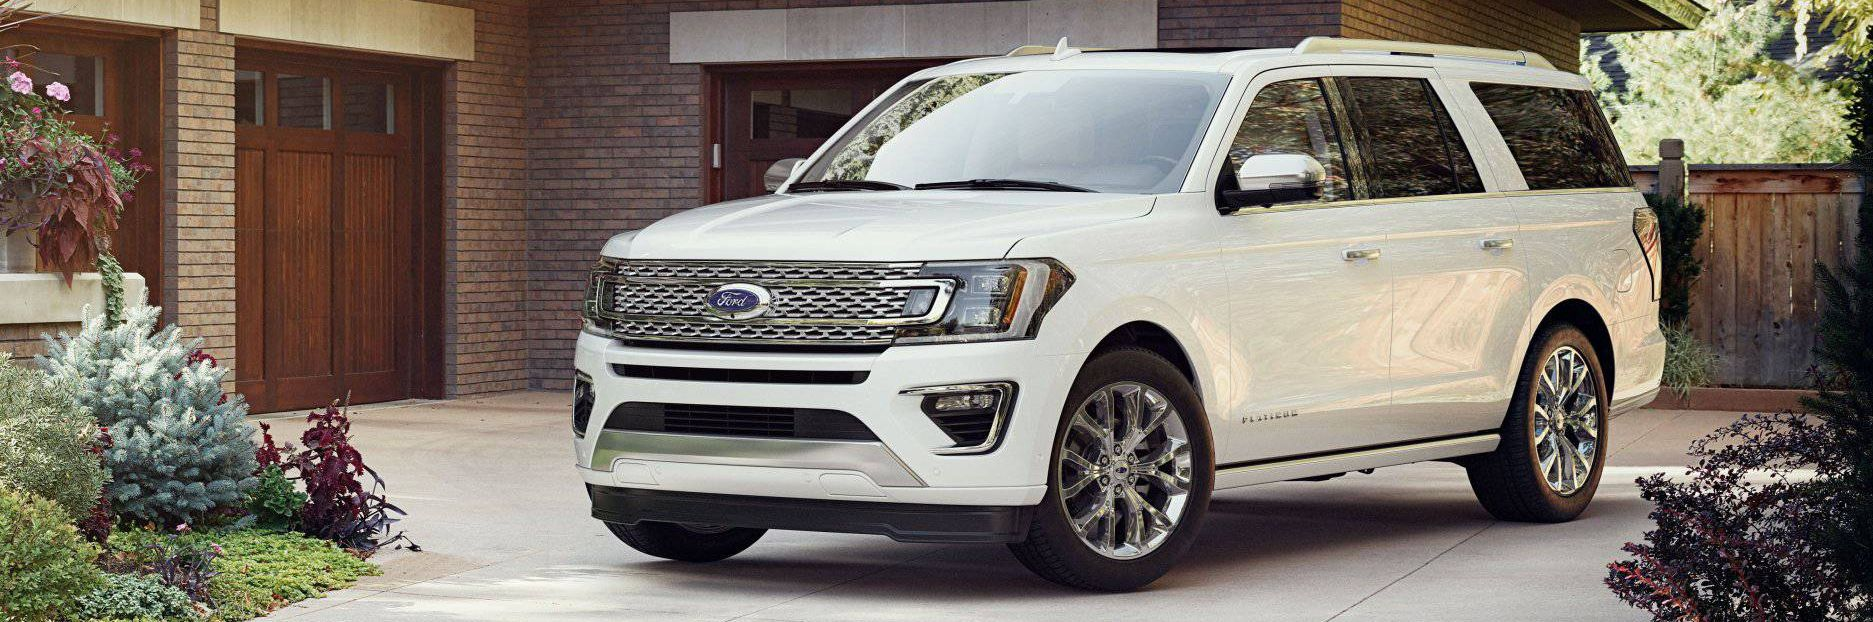 2018 Ford Expedition Preview near Waukegan, IL